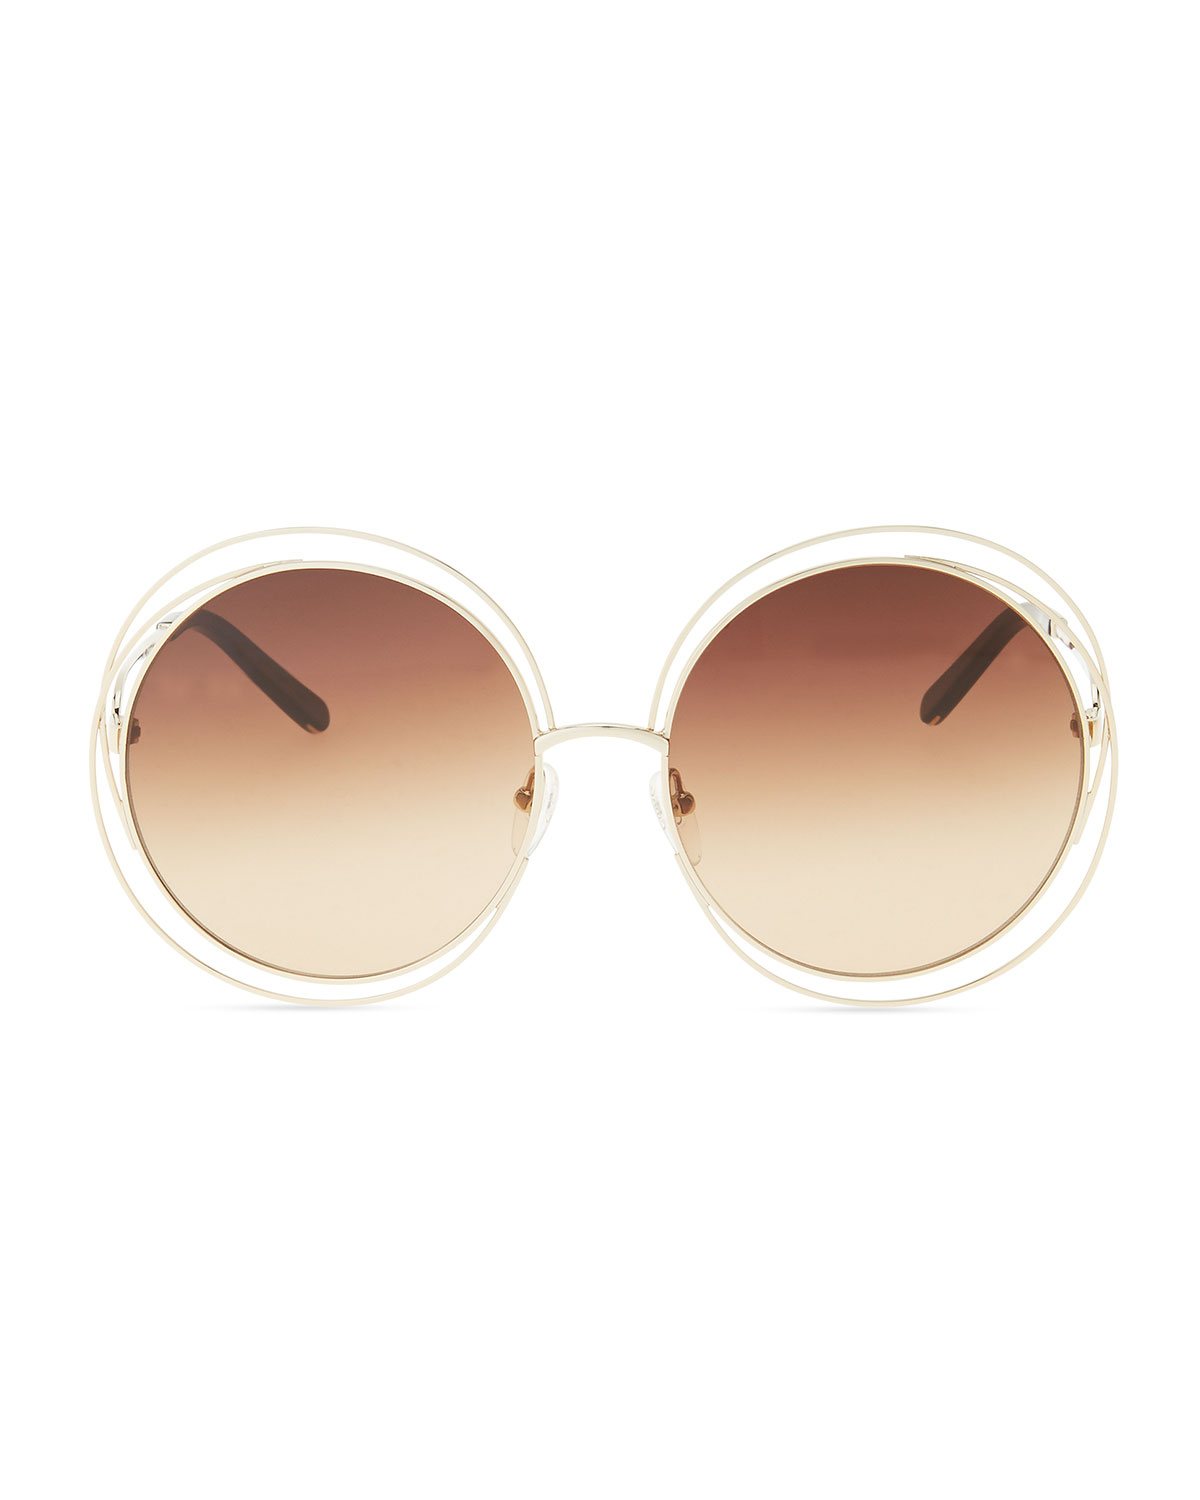 Lyst - Chloé Carlina Round Wire-frame Sunglasses in Pink